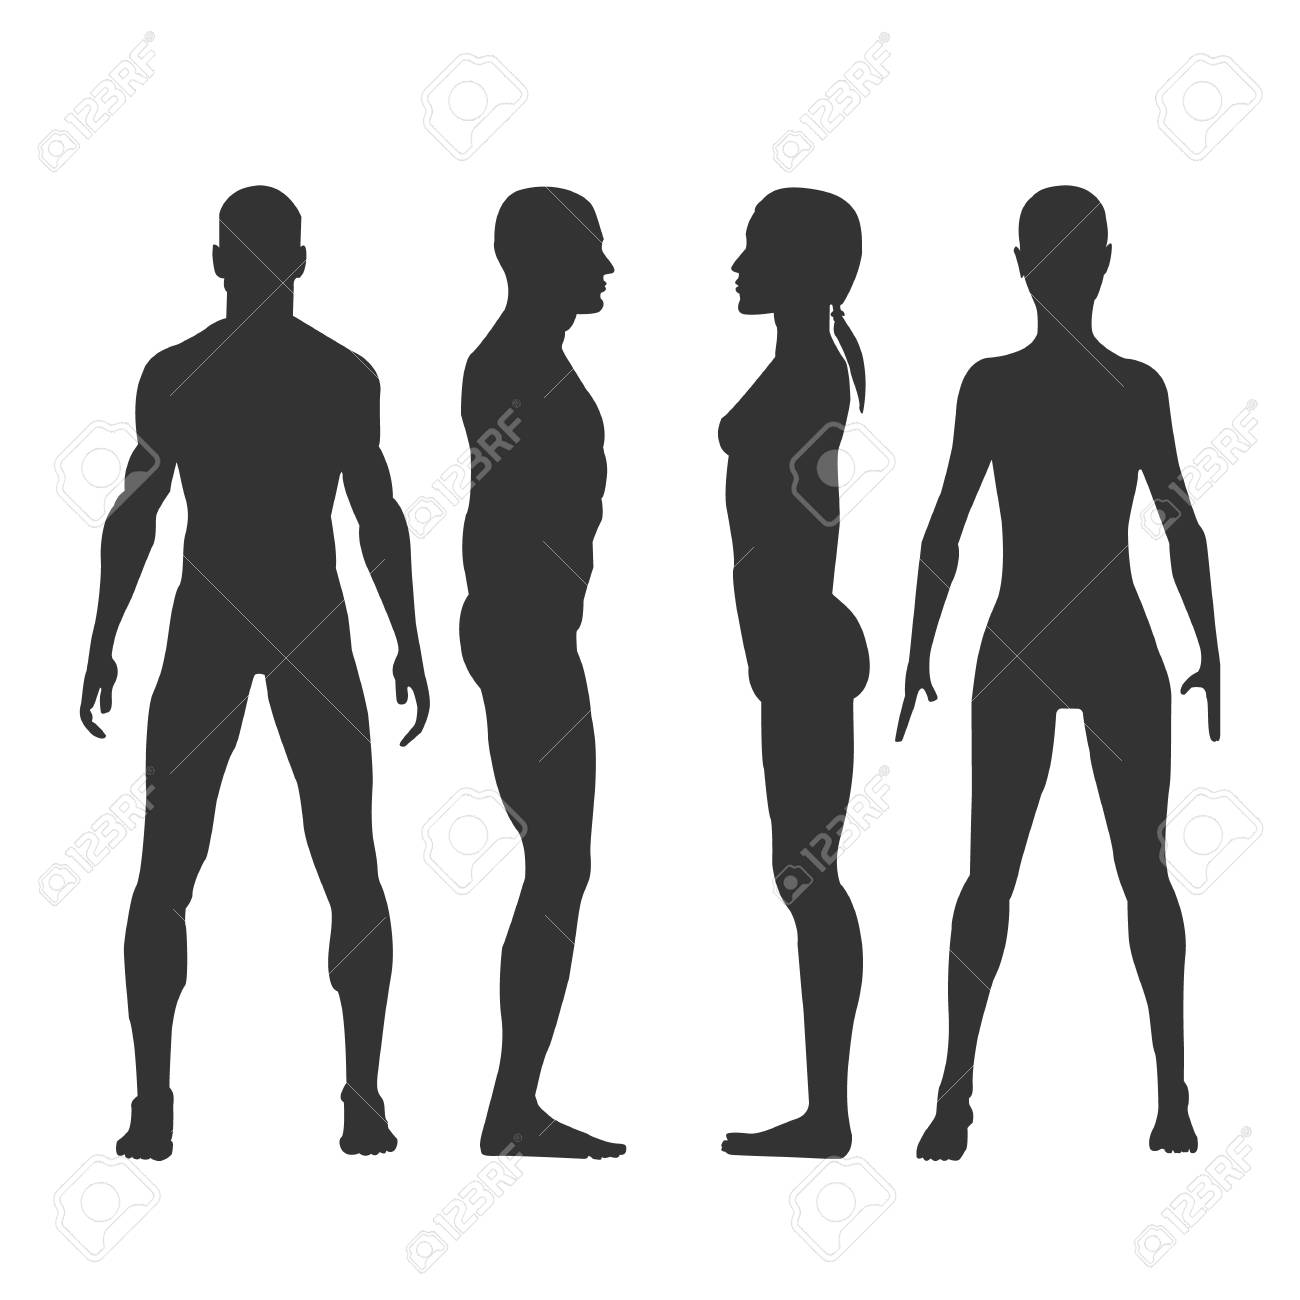 Man And Woman Vector Black Silhouettes In Front And Side View Royalty Free Cliparts Vectors And Stock Illustration Image 104612831